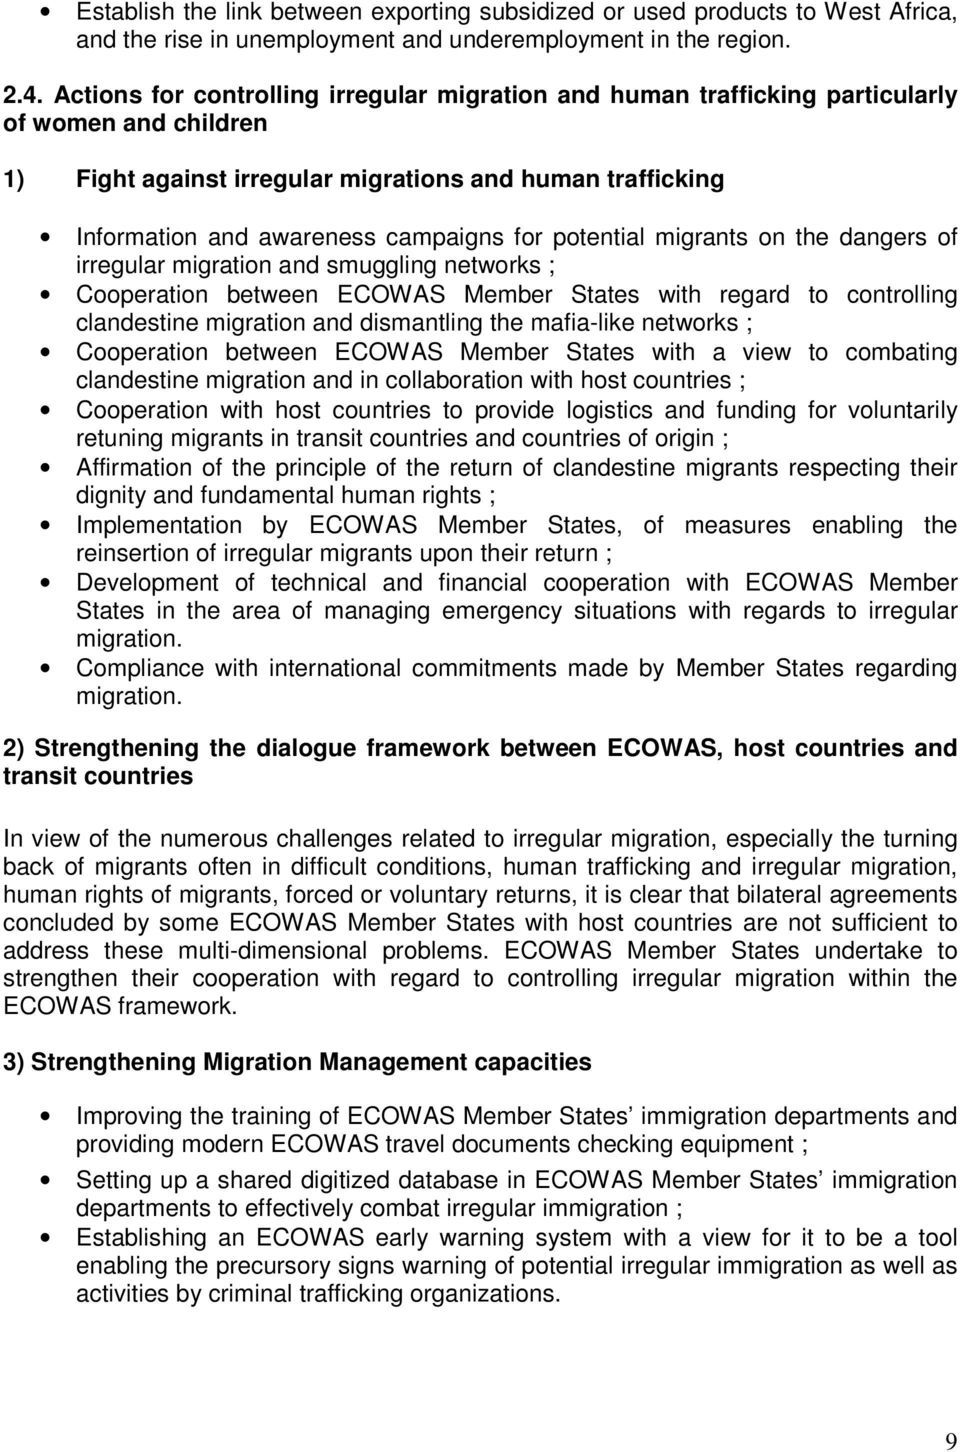 for potential migrants on the dangers of irregular migration and smuggling networks ; Cooperation between ECOWAS Member States with regard to controlling clandestine migration and dismantling the